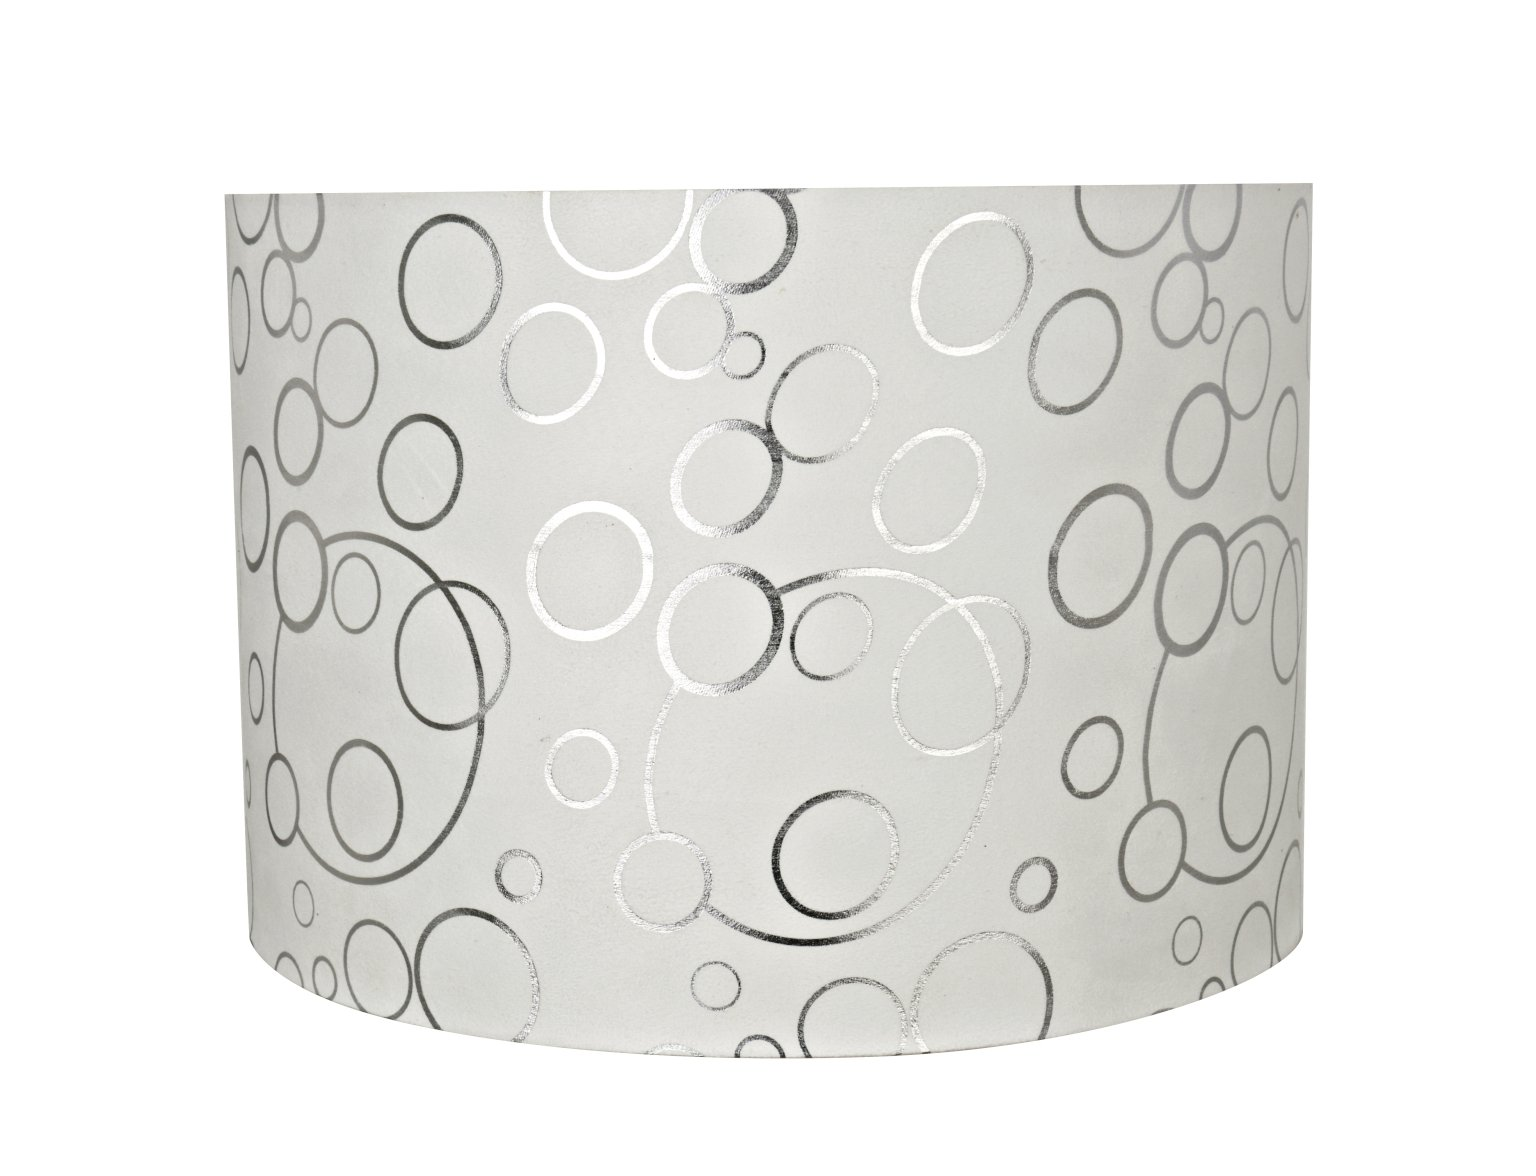 Aspen Creative 31163 Transitional Drum (Cylinder) Shaped Spider Construction Lamp Shade in White, 16'' Wide (16'' x 16'' x 11'')